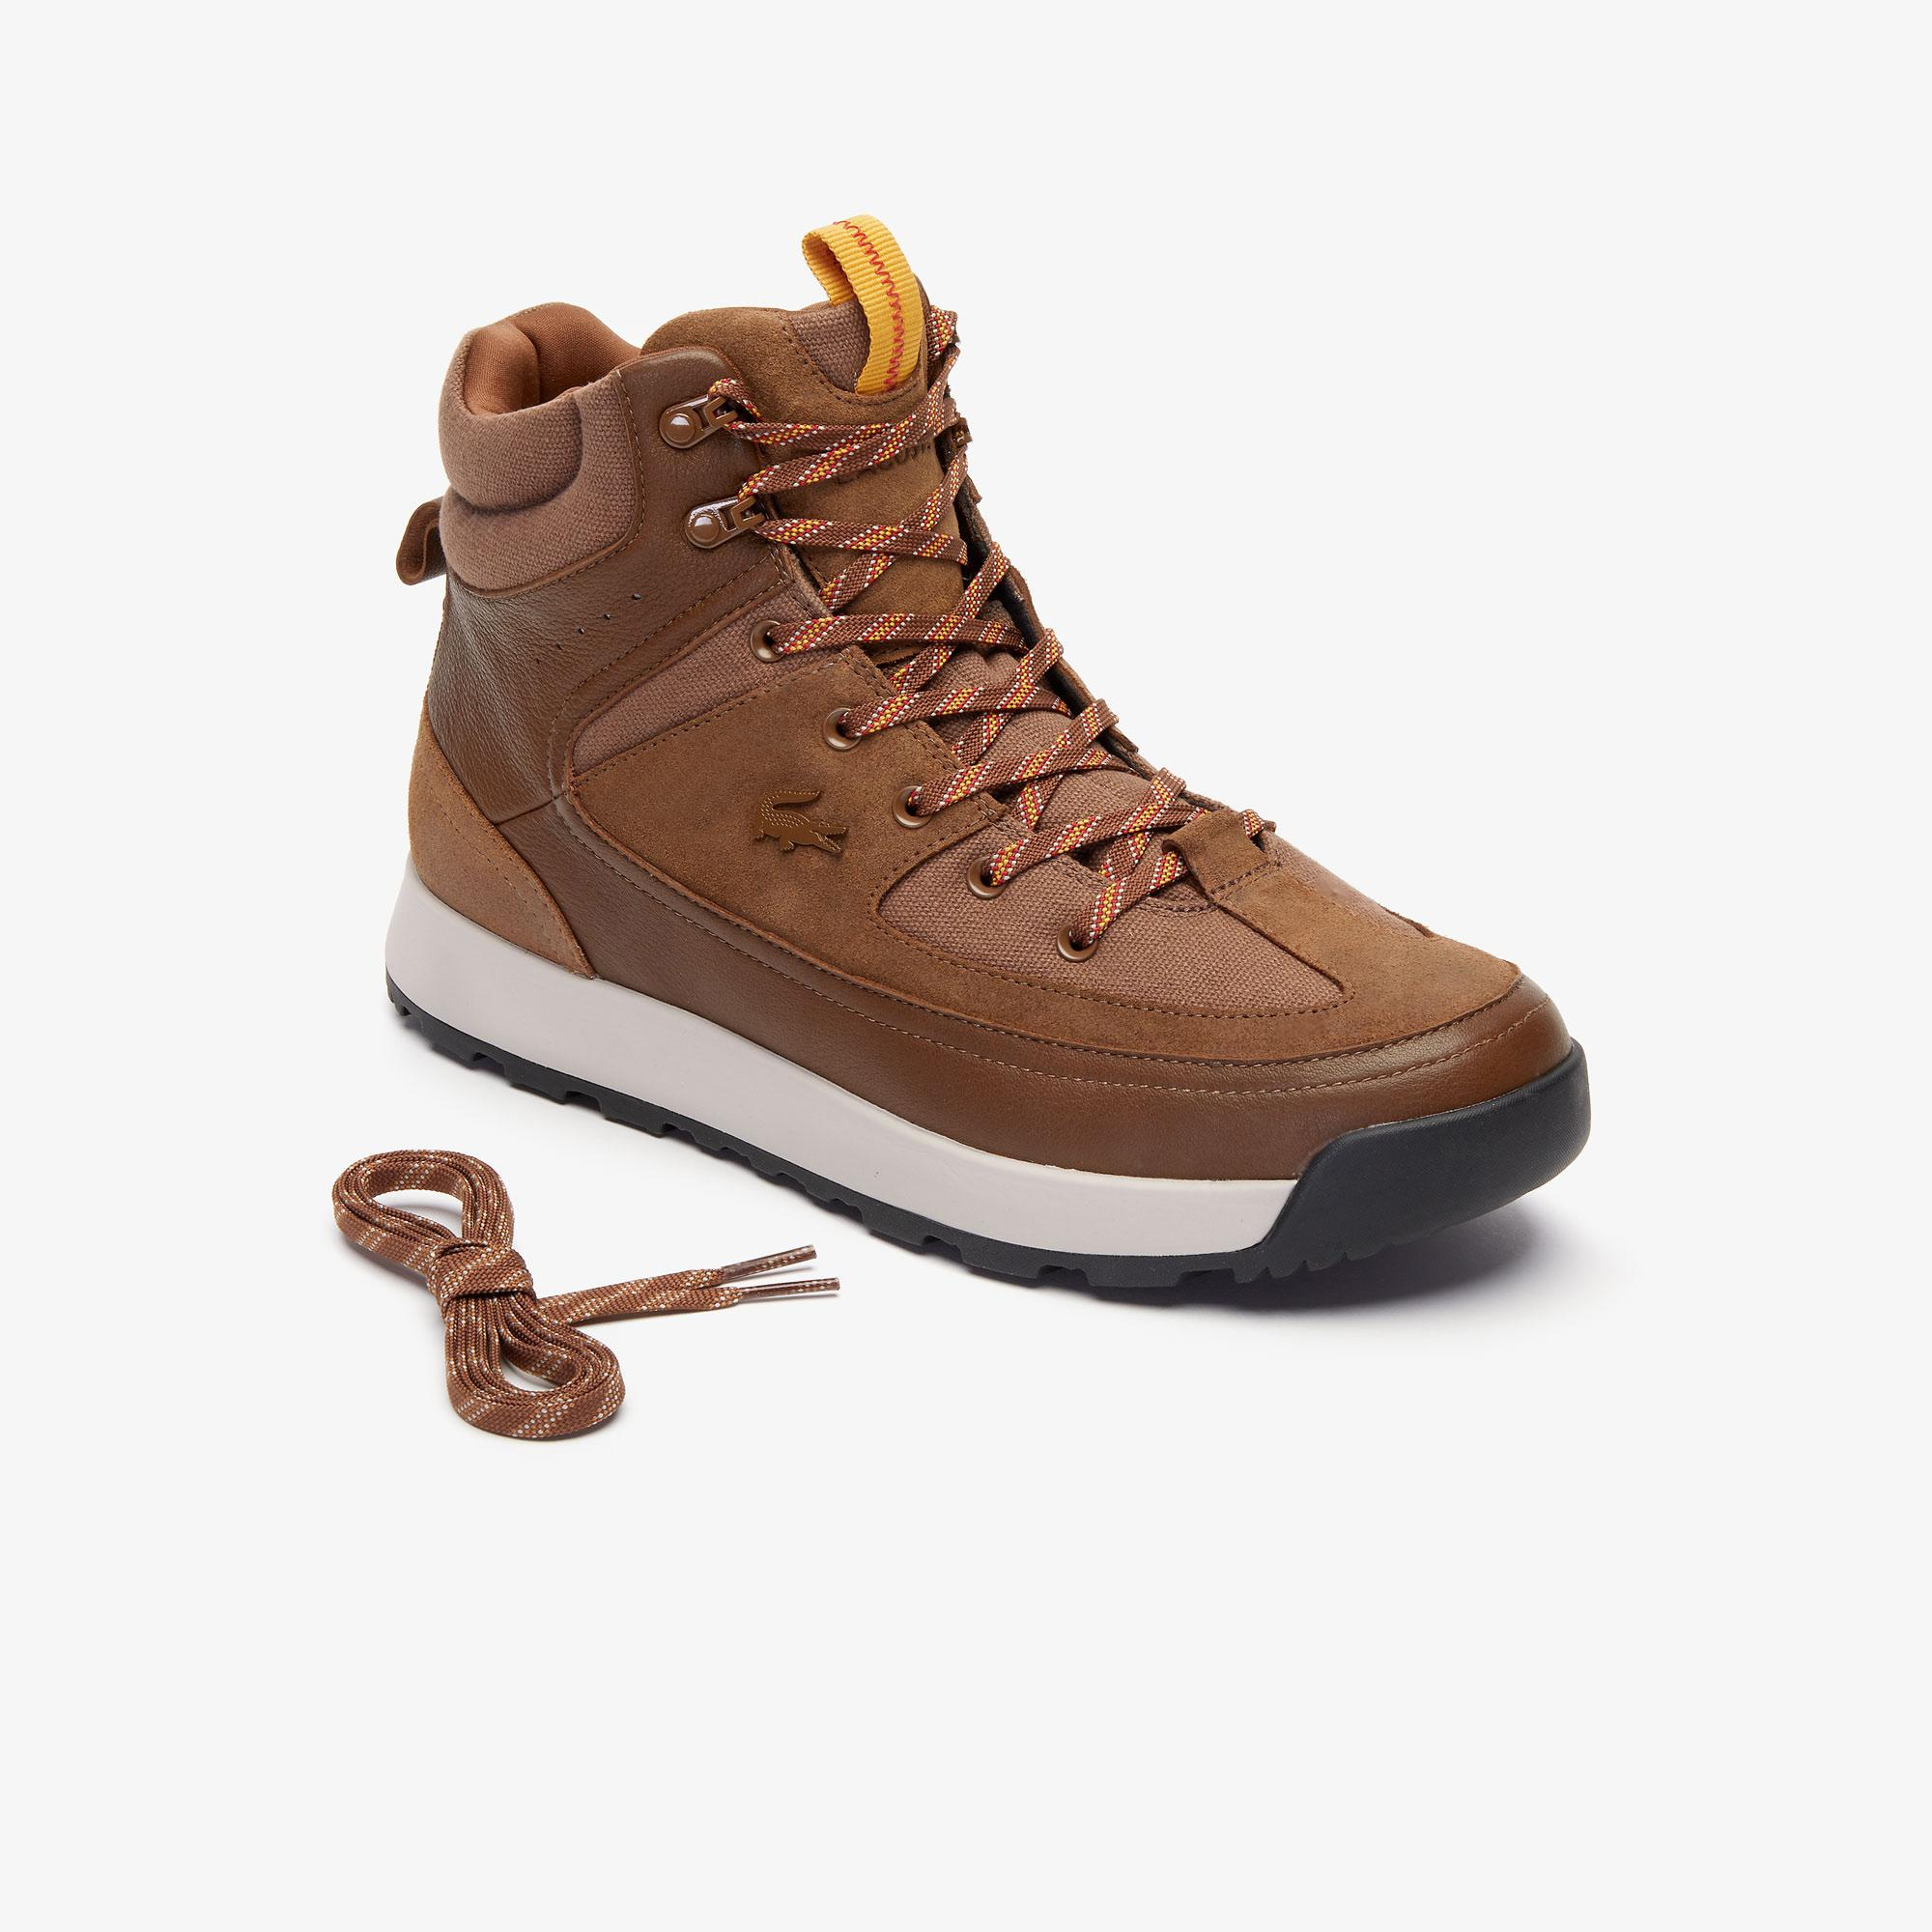 Lacoste Men's Urban Breaker 319 1 Cma Boots